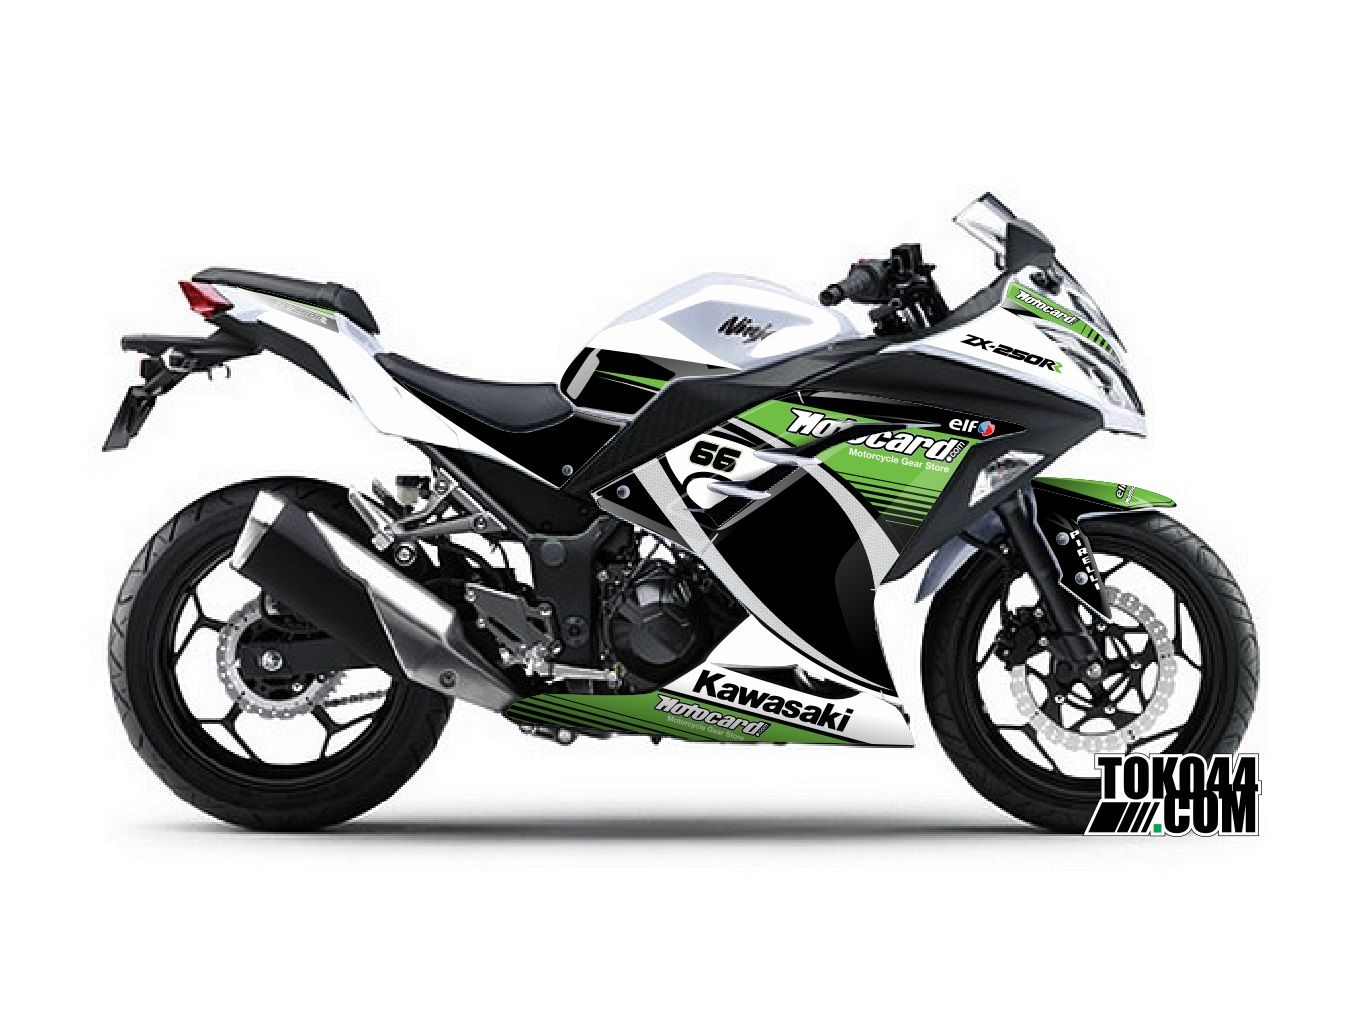 decal sticker ninja 250 fi putih – stiker modifikasi kawasaki